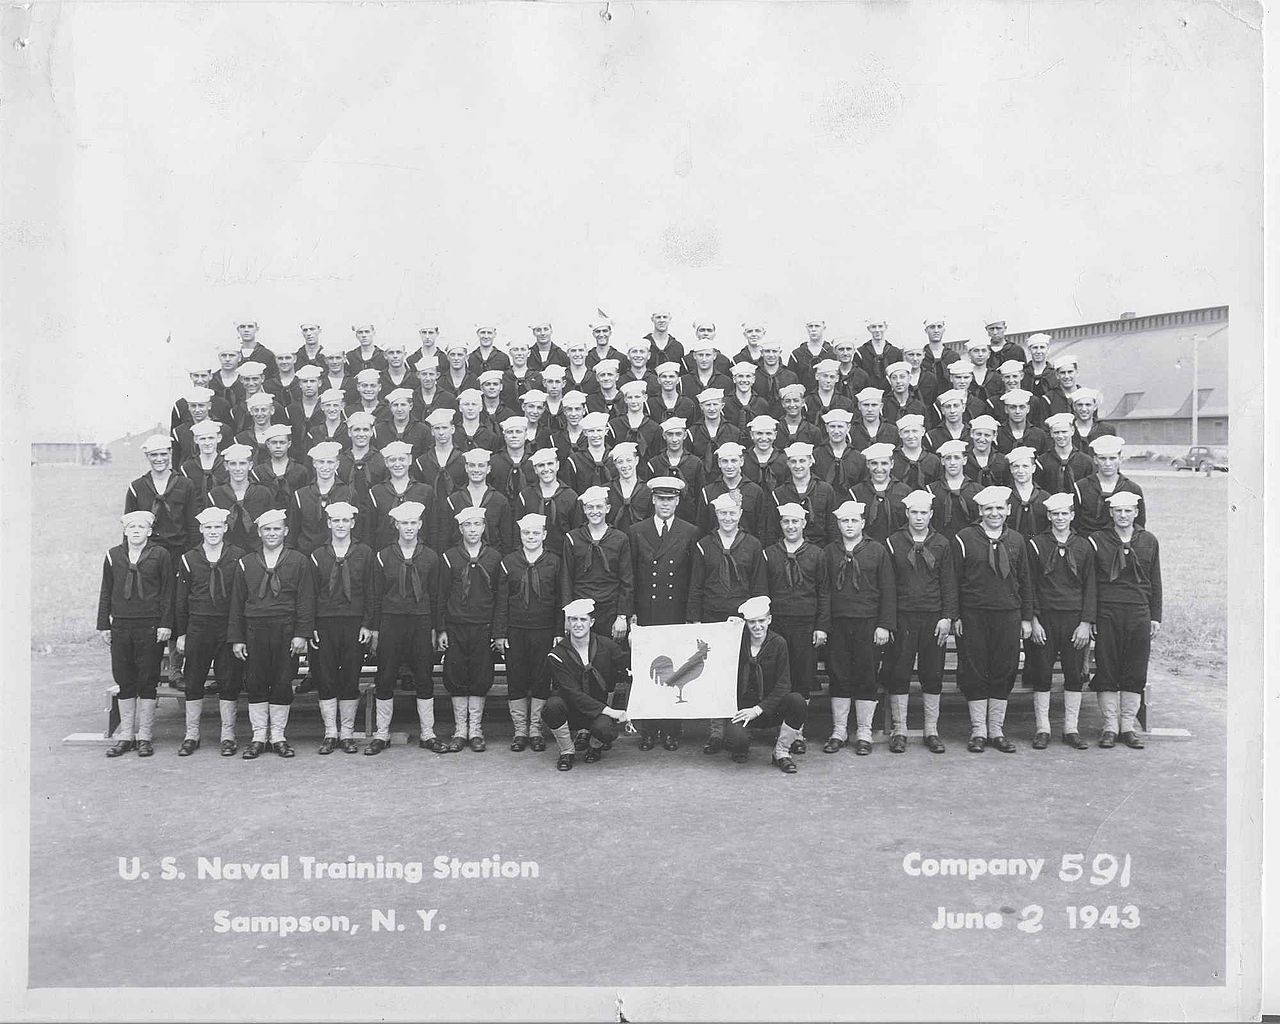 Navy graduate photo, Company 591 June 2, 1943